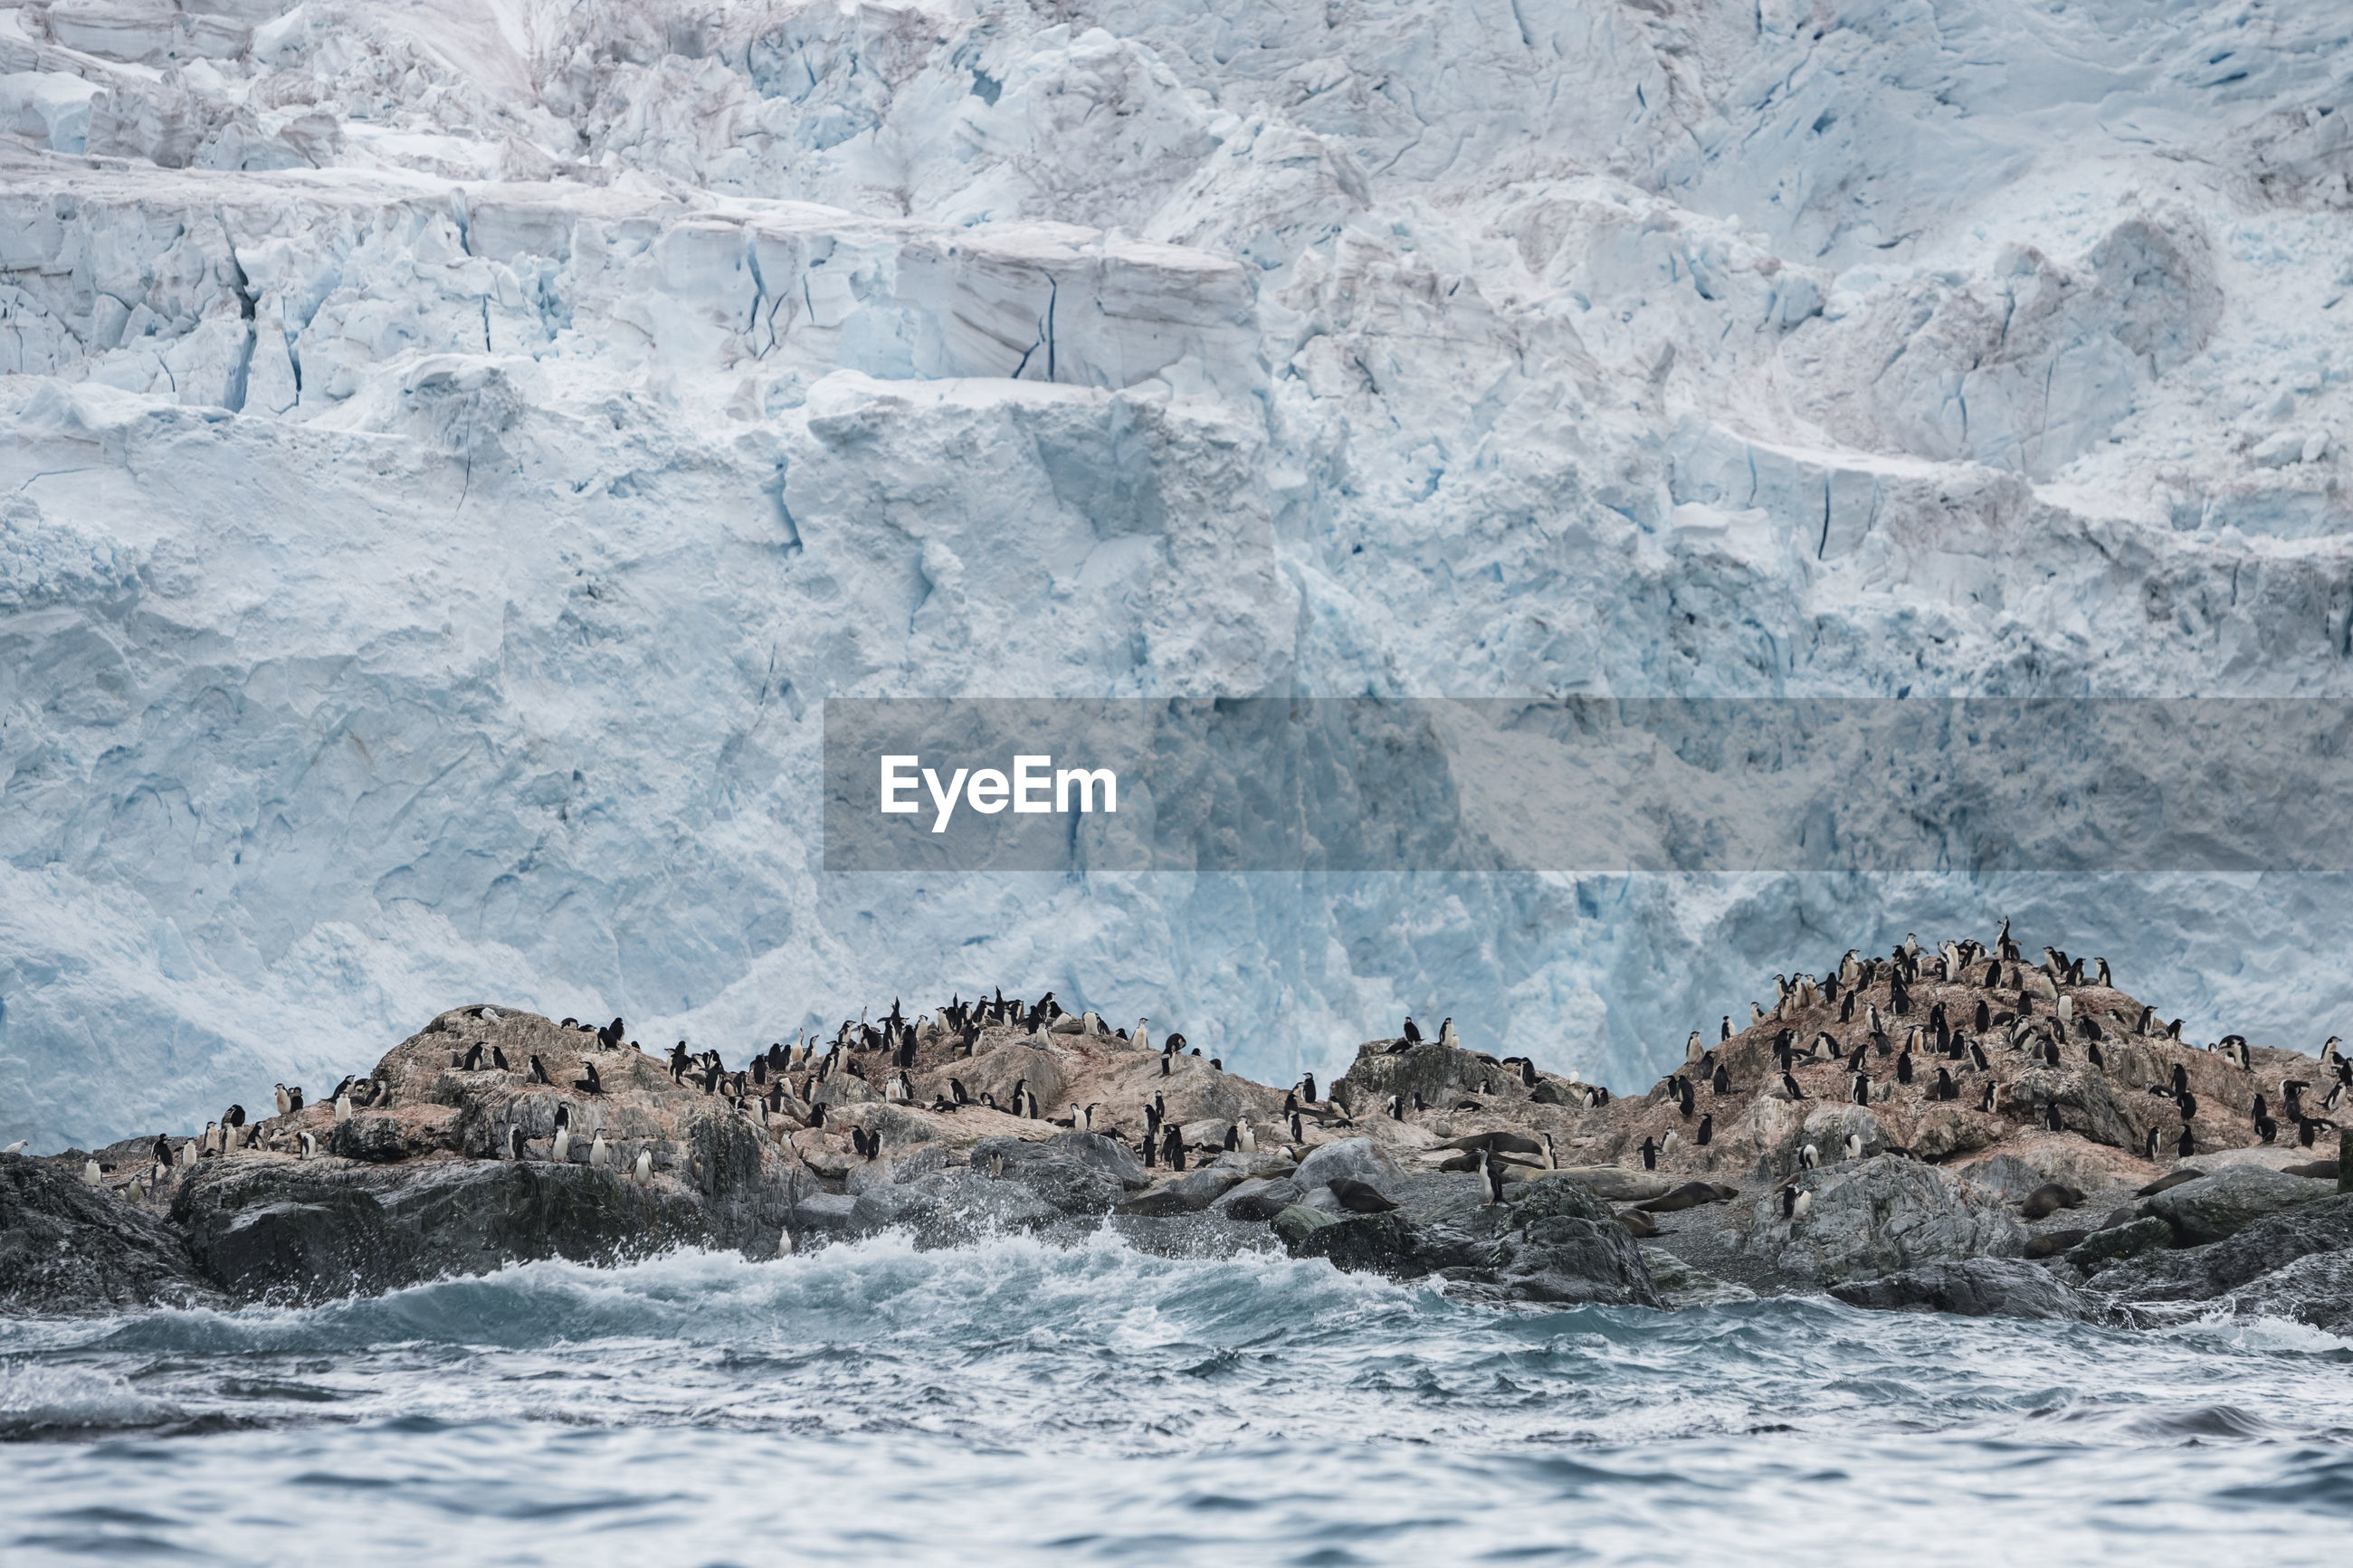 Chinstrap penguin colony in front of a glacier on elephant island, antarctica.